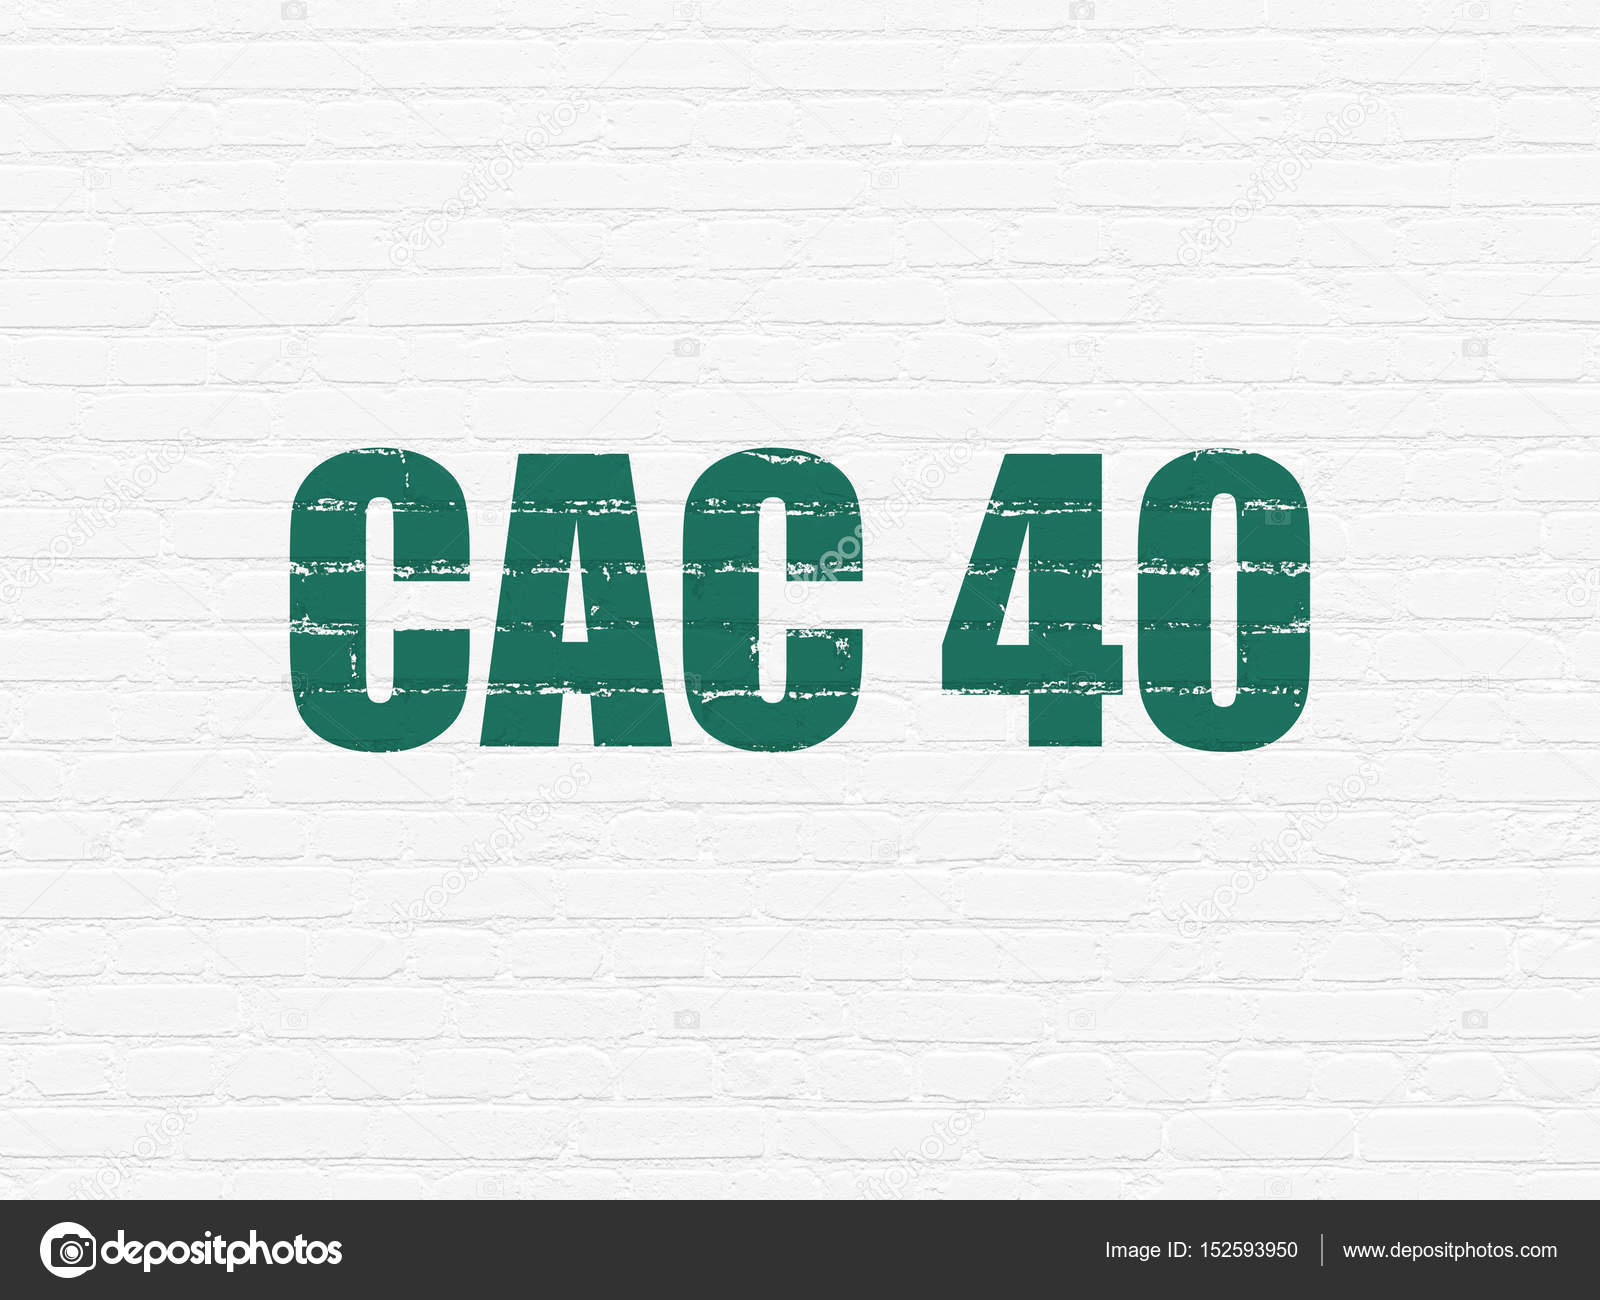 Stock Market Indexes Concept CAC 40 On Wall Background Photo